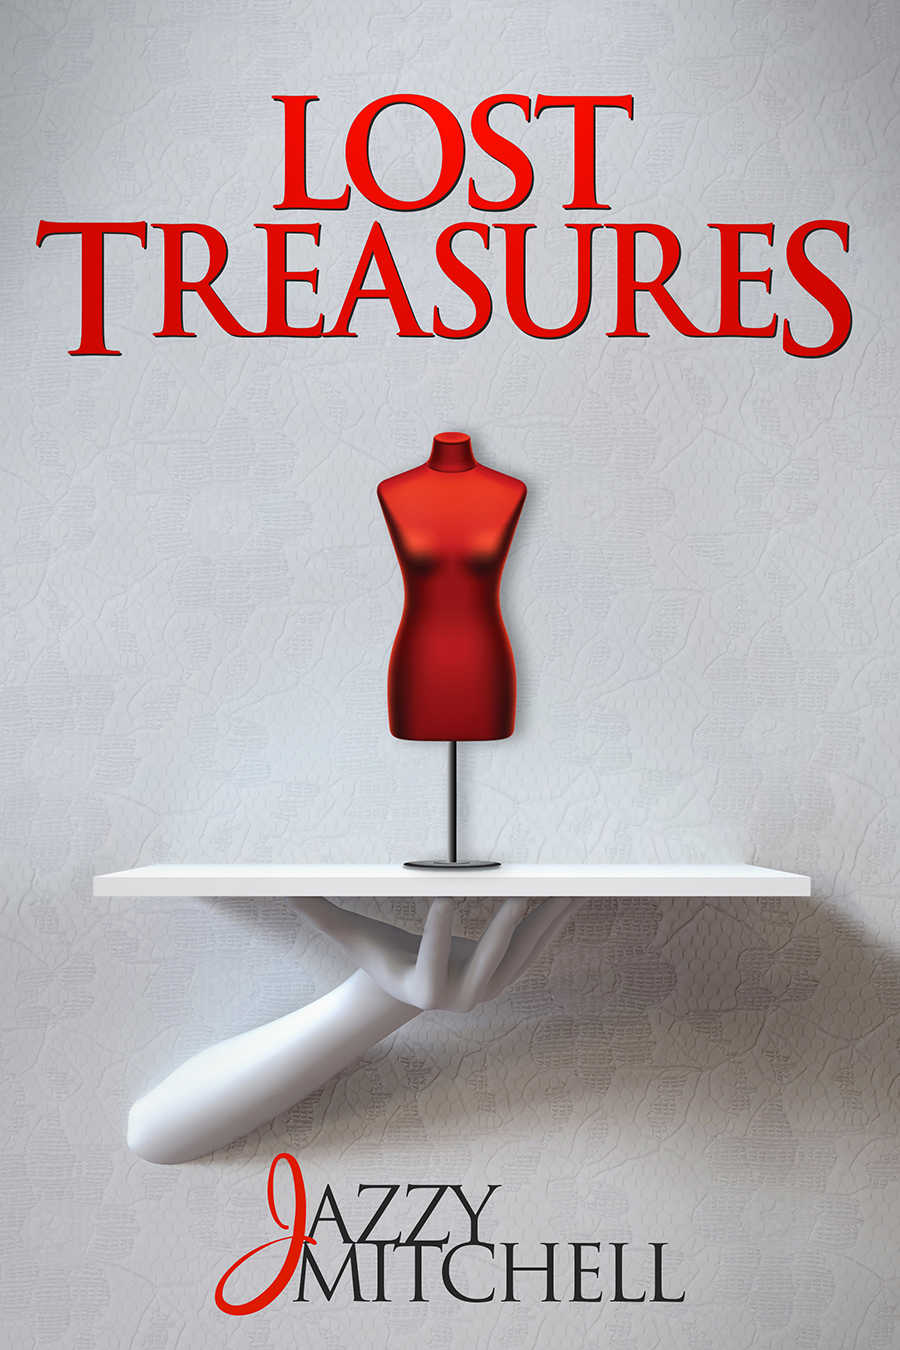 Book Image - Lost Treasures by Jazzy Mitchell